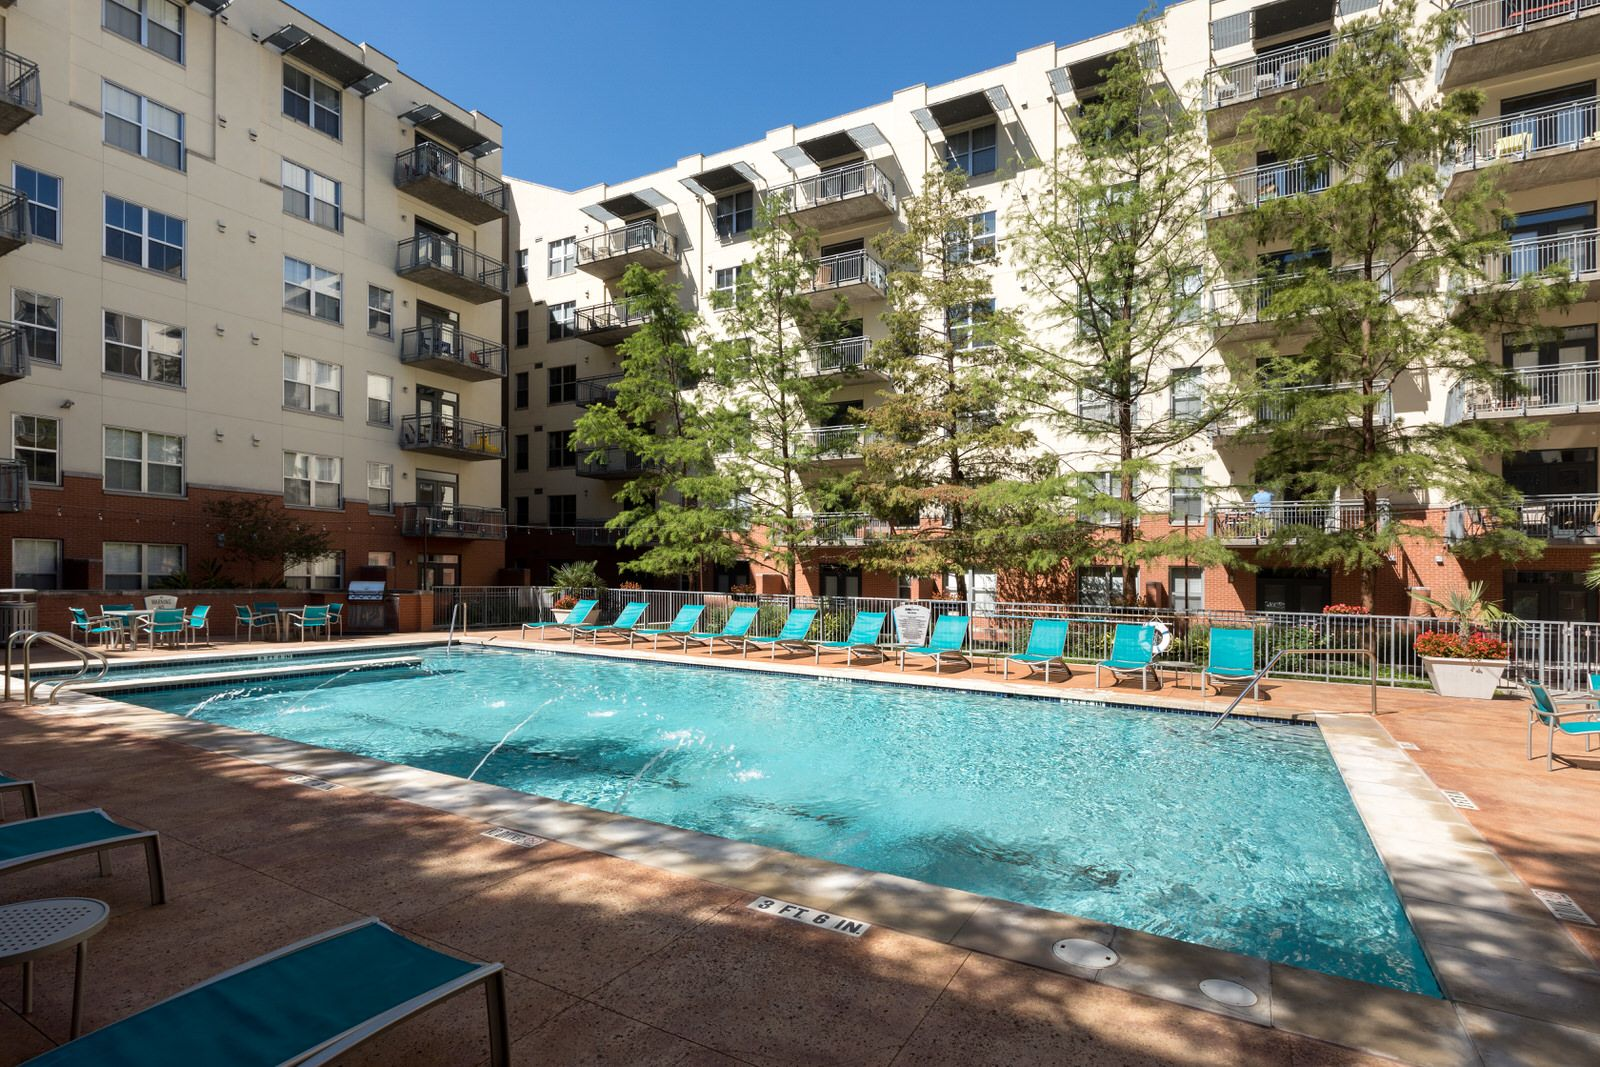 Sun or shade at the pool? You decide. Downtown austin